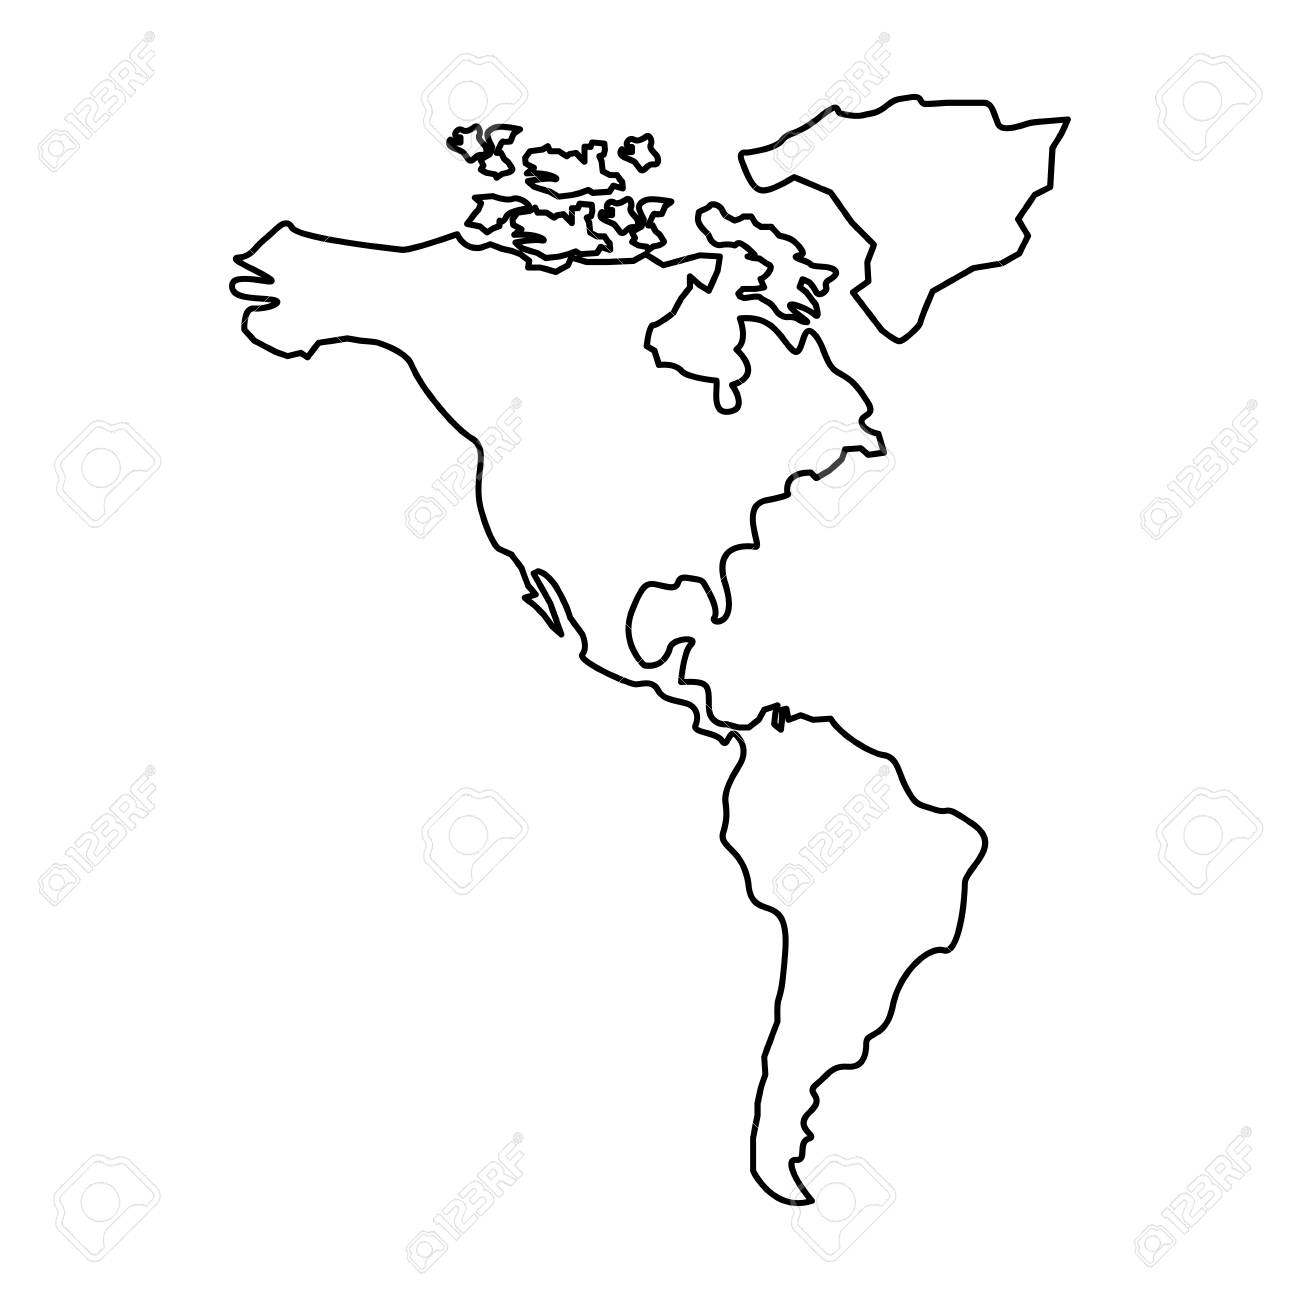 Map Of America Outline.North And South America Map Continent Vector Illustration Outline